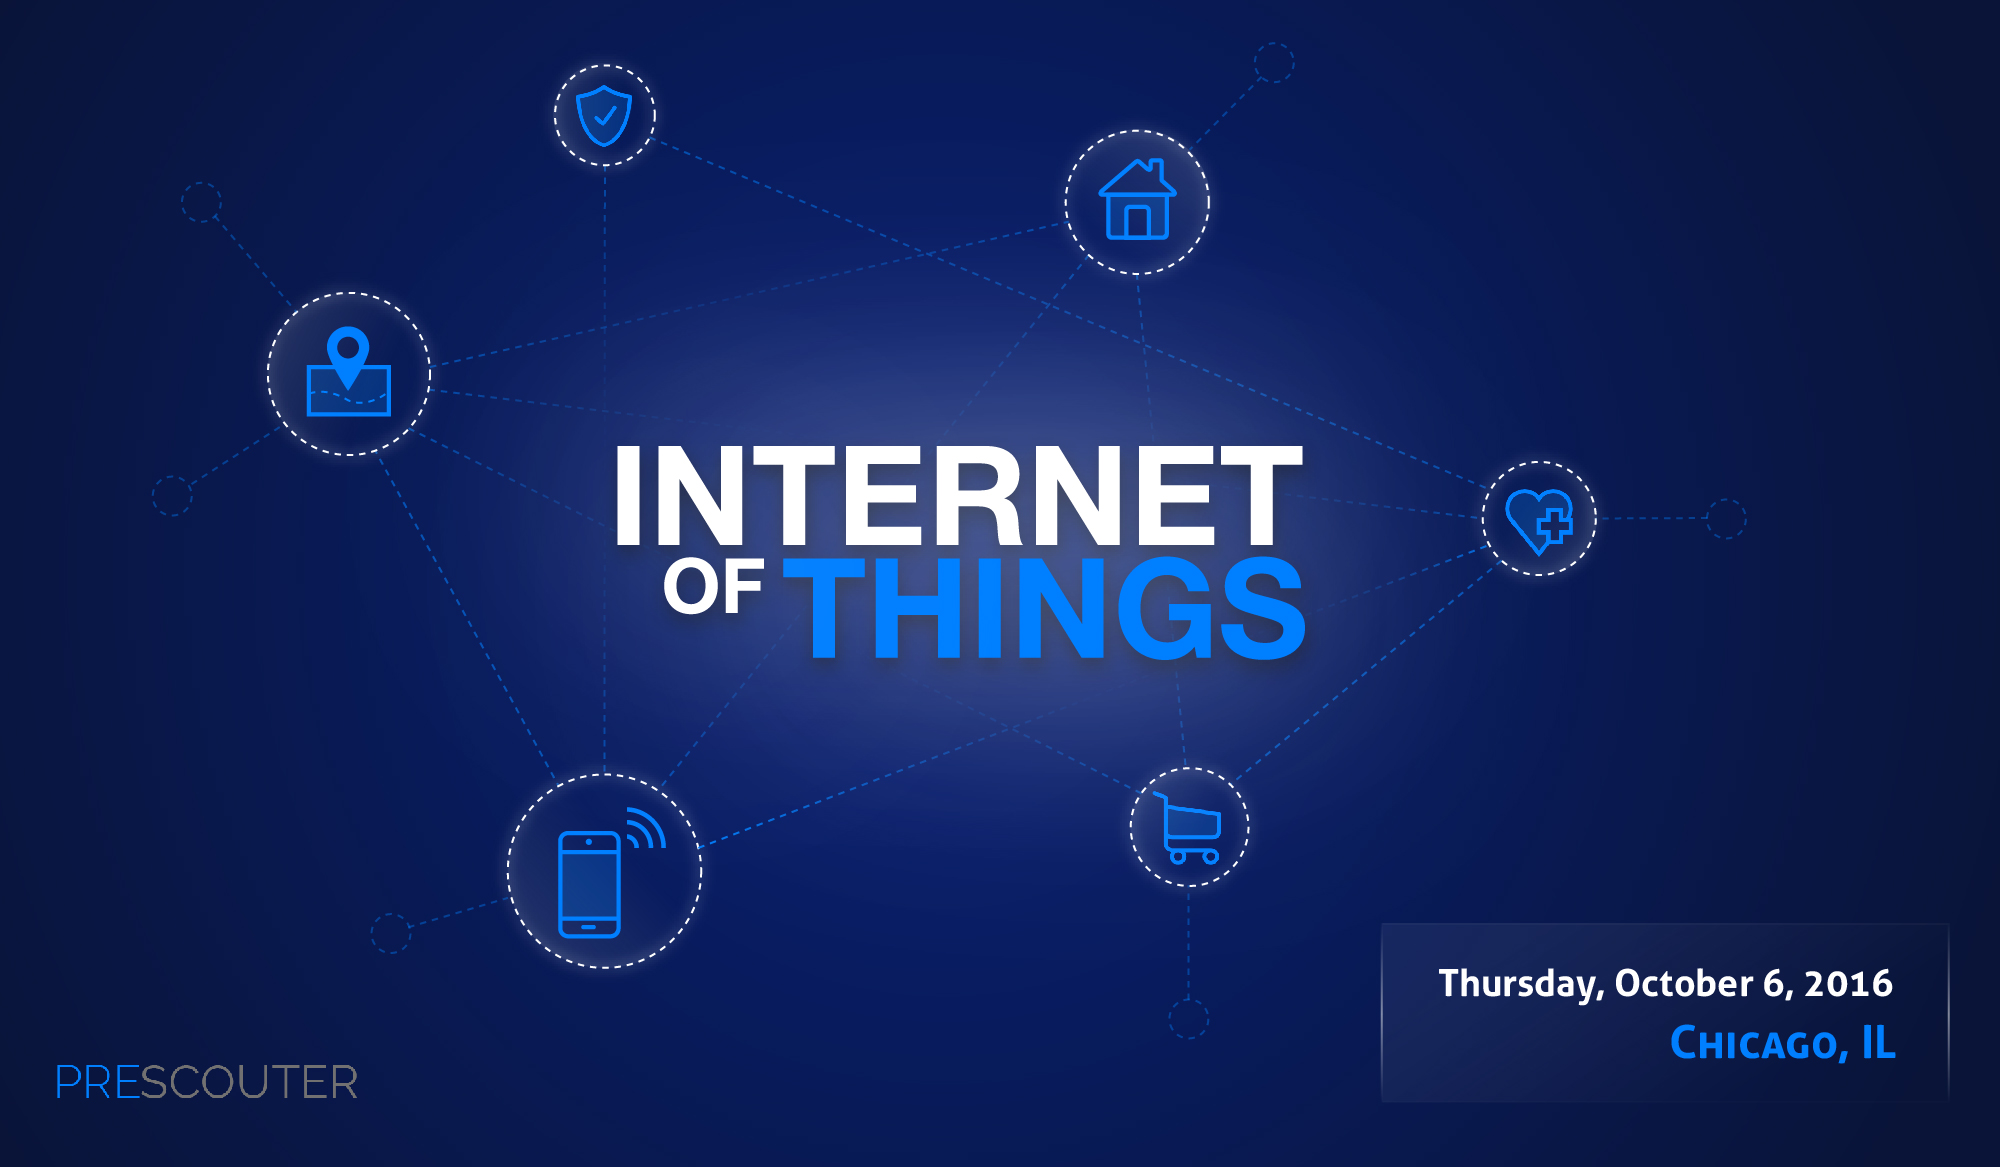 How will the Internet of Things Impact your Industry?